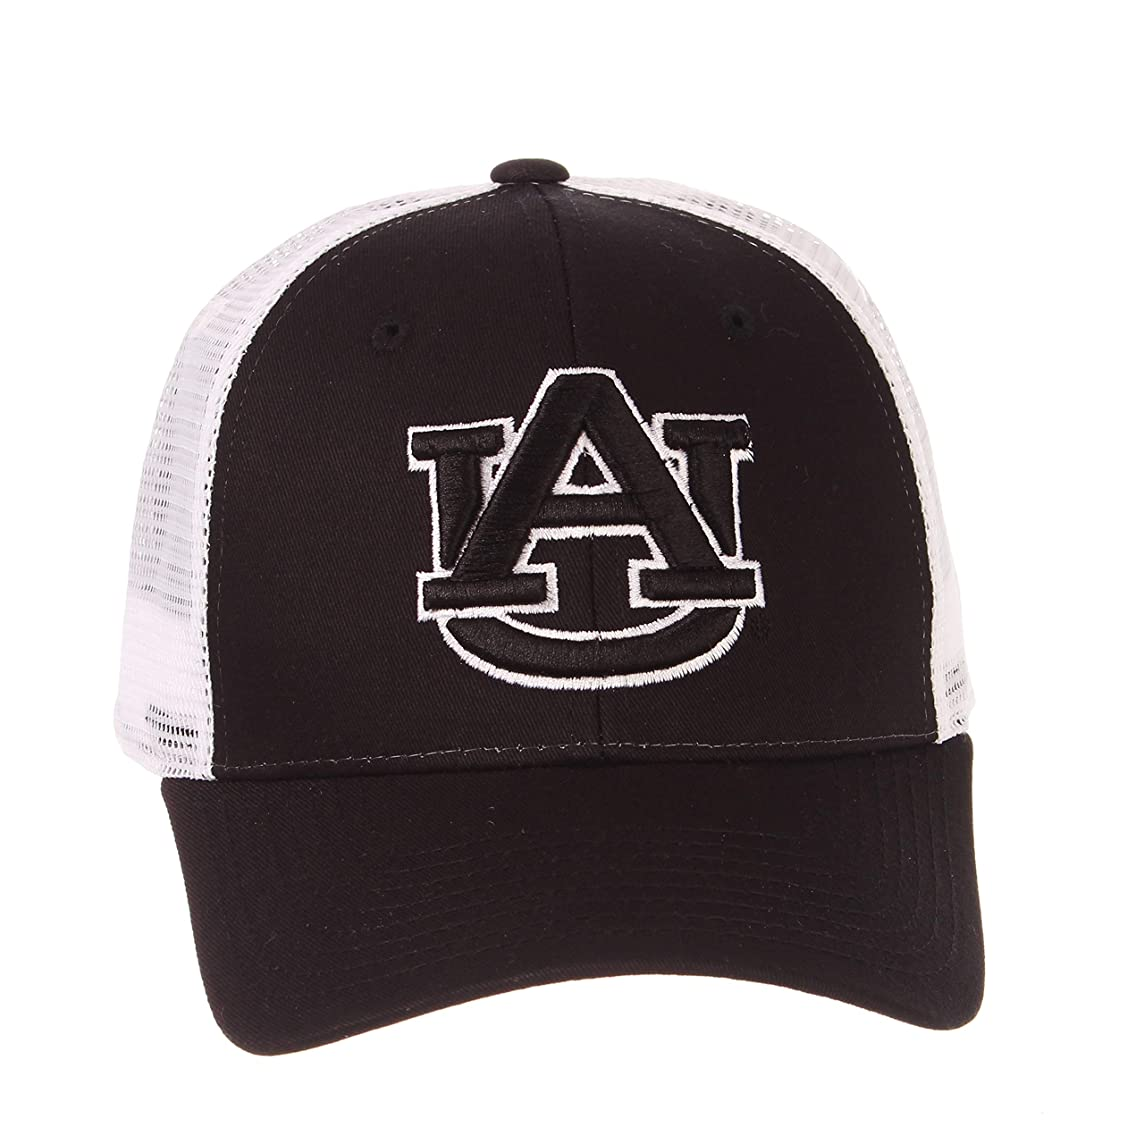 Auburn University Tigers AU Black Big Rig Mesh Top Trucker Mens/Boys/Womens Baseball Hat/Cap Size Adjustable